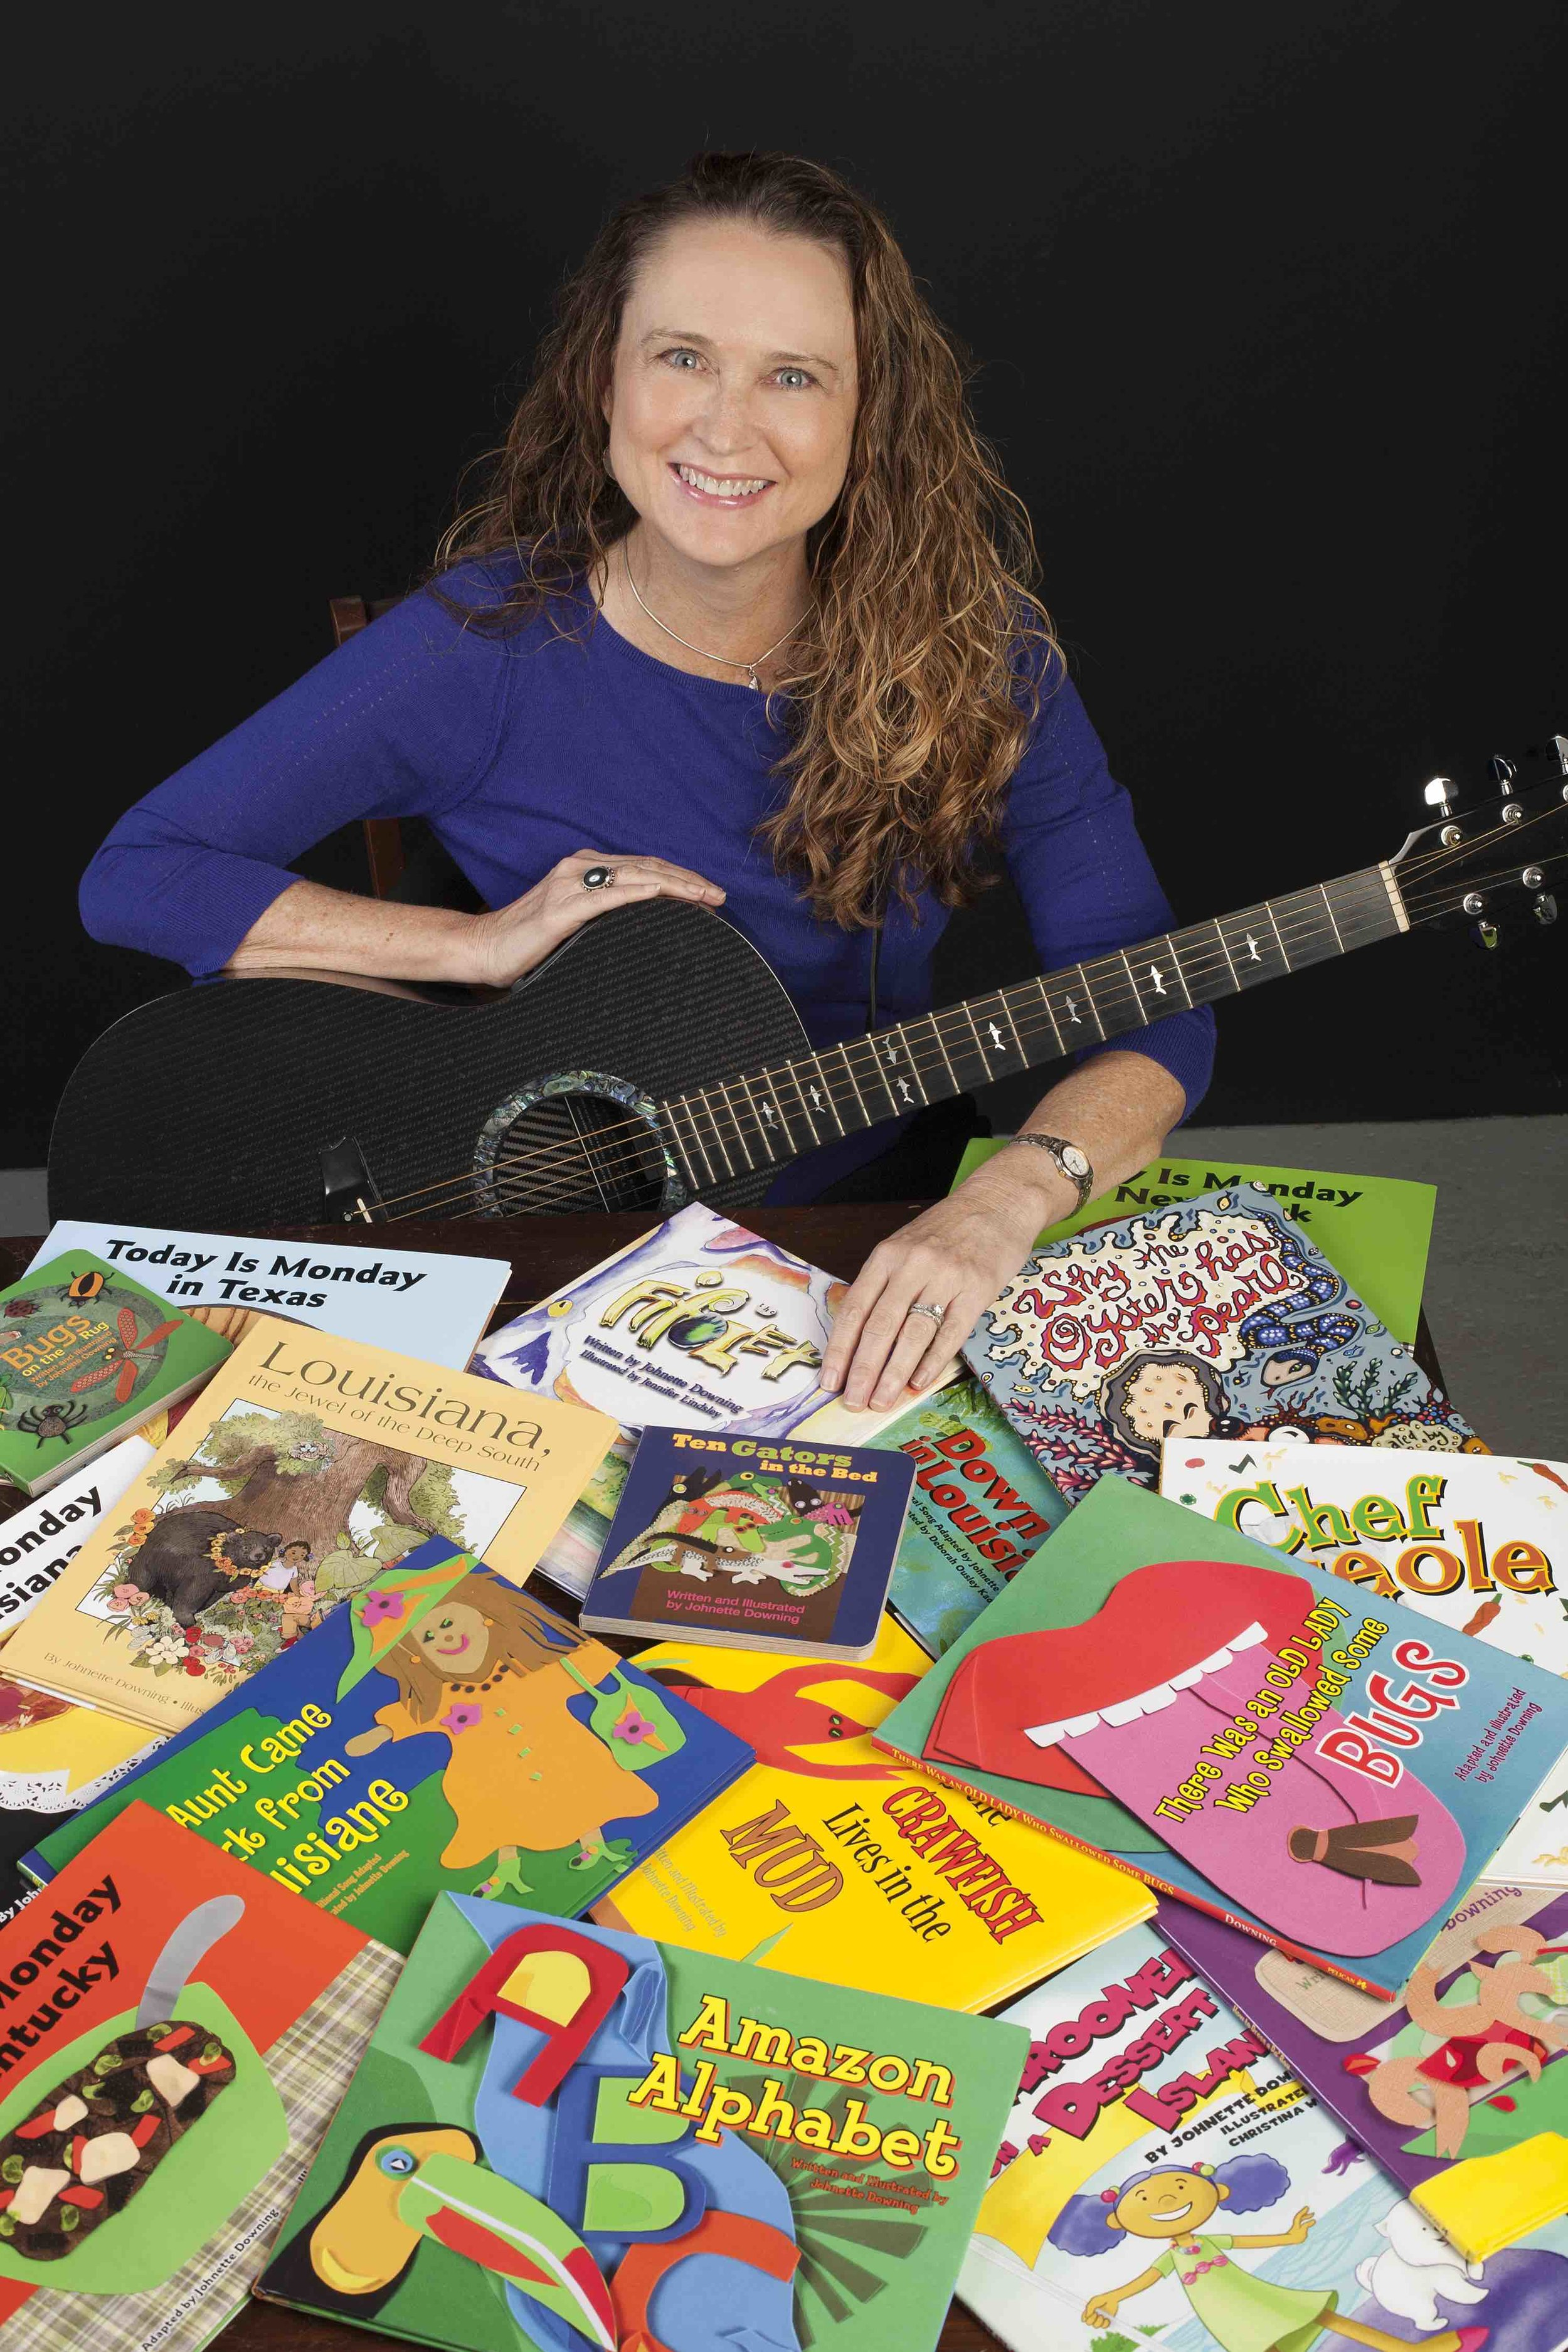 Johnette with books copy.jpg